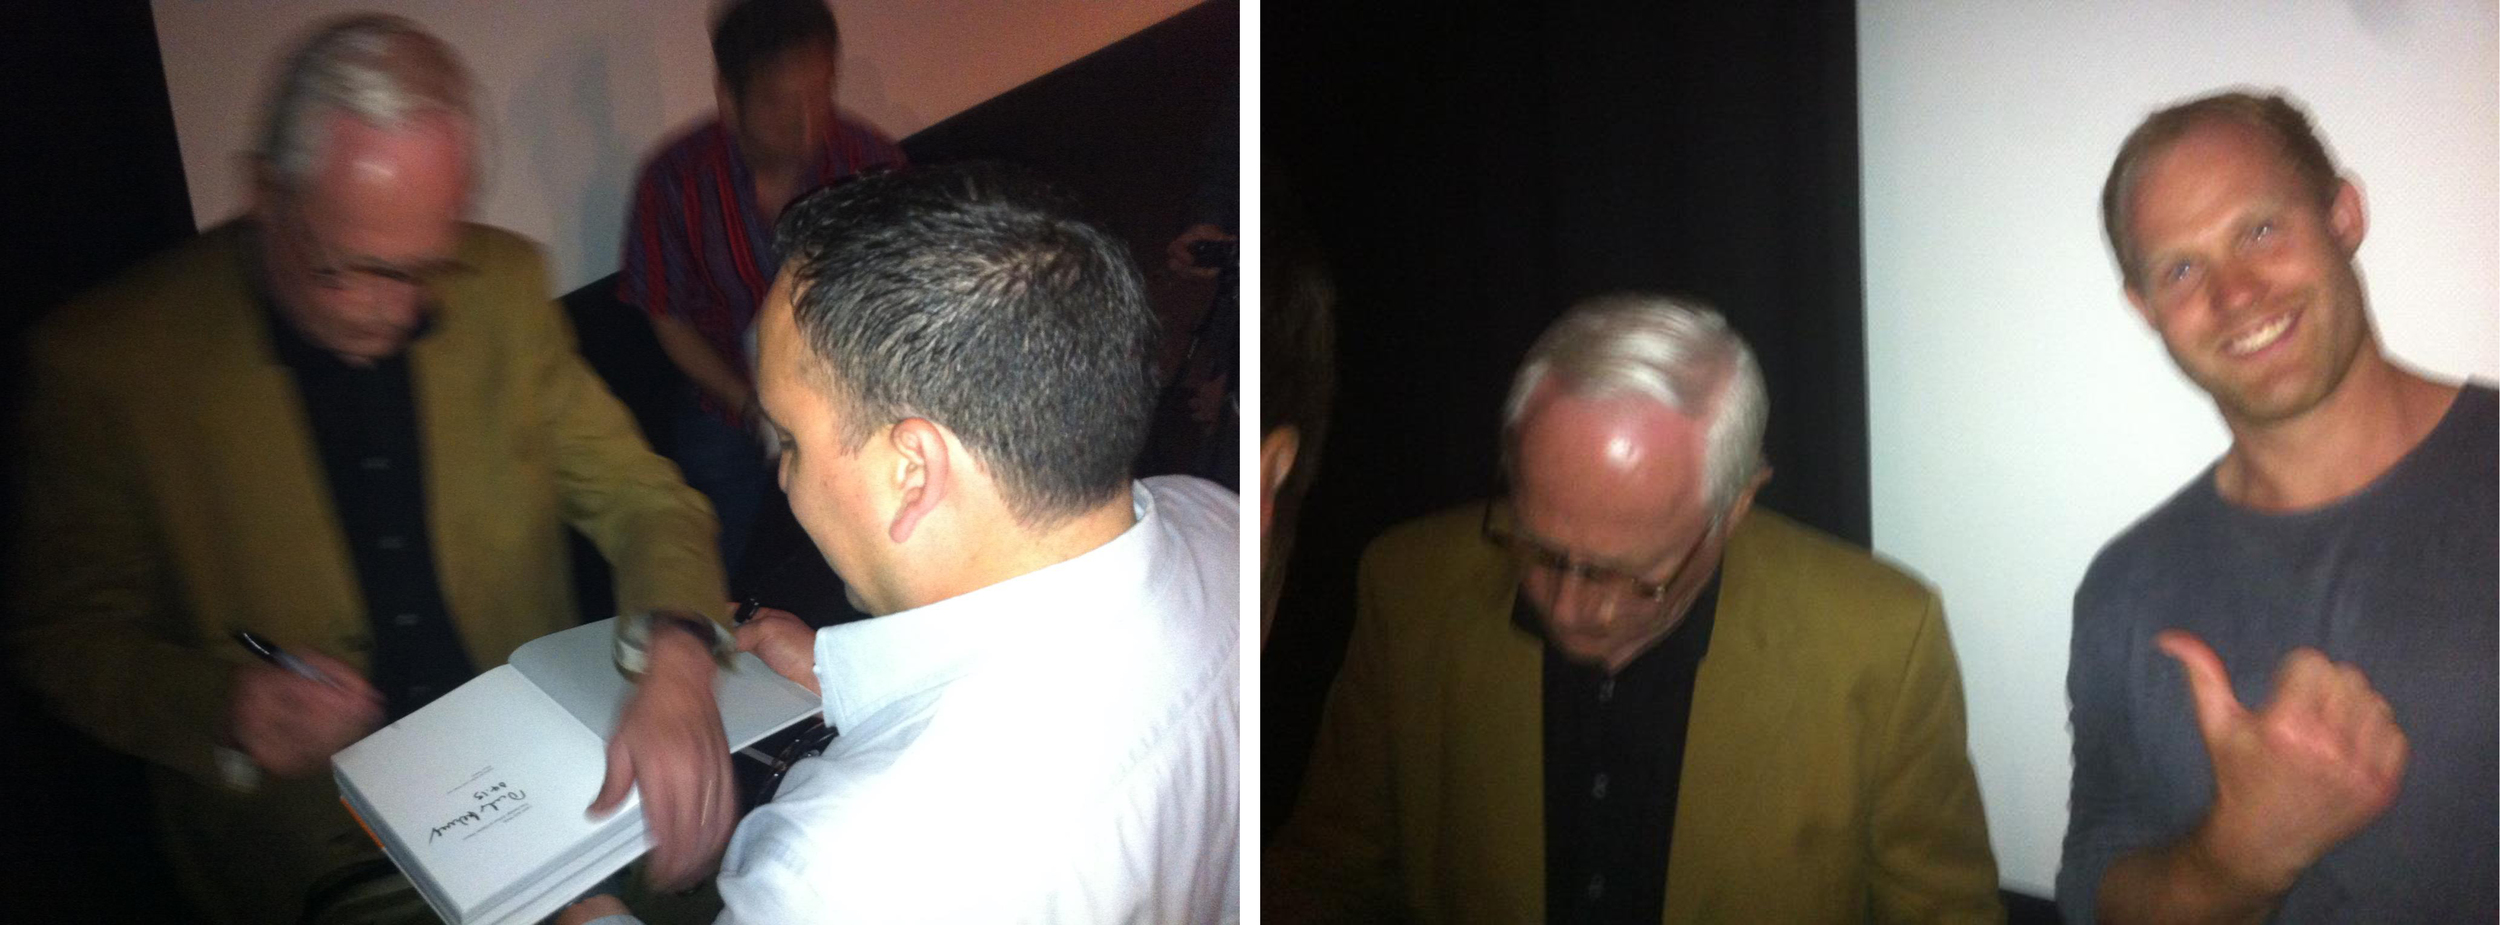 Dieter Rams signing my copy of Less and More (left).  My friend Thorben Neu is just hangin' with Dieter.  I love this pic (right).